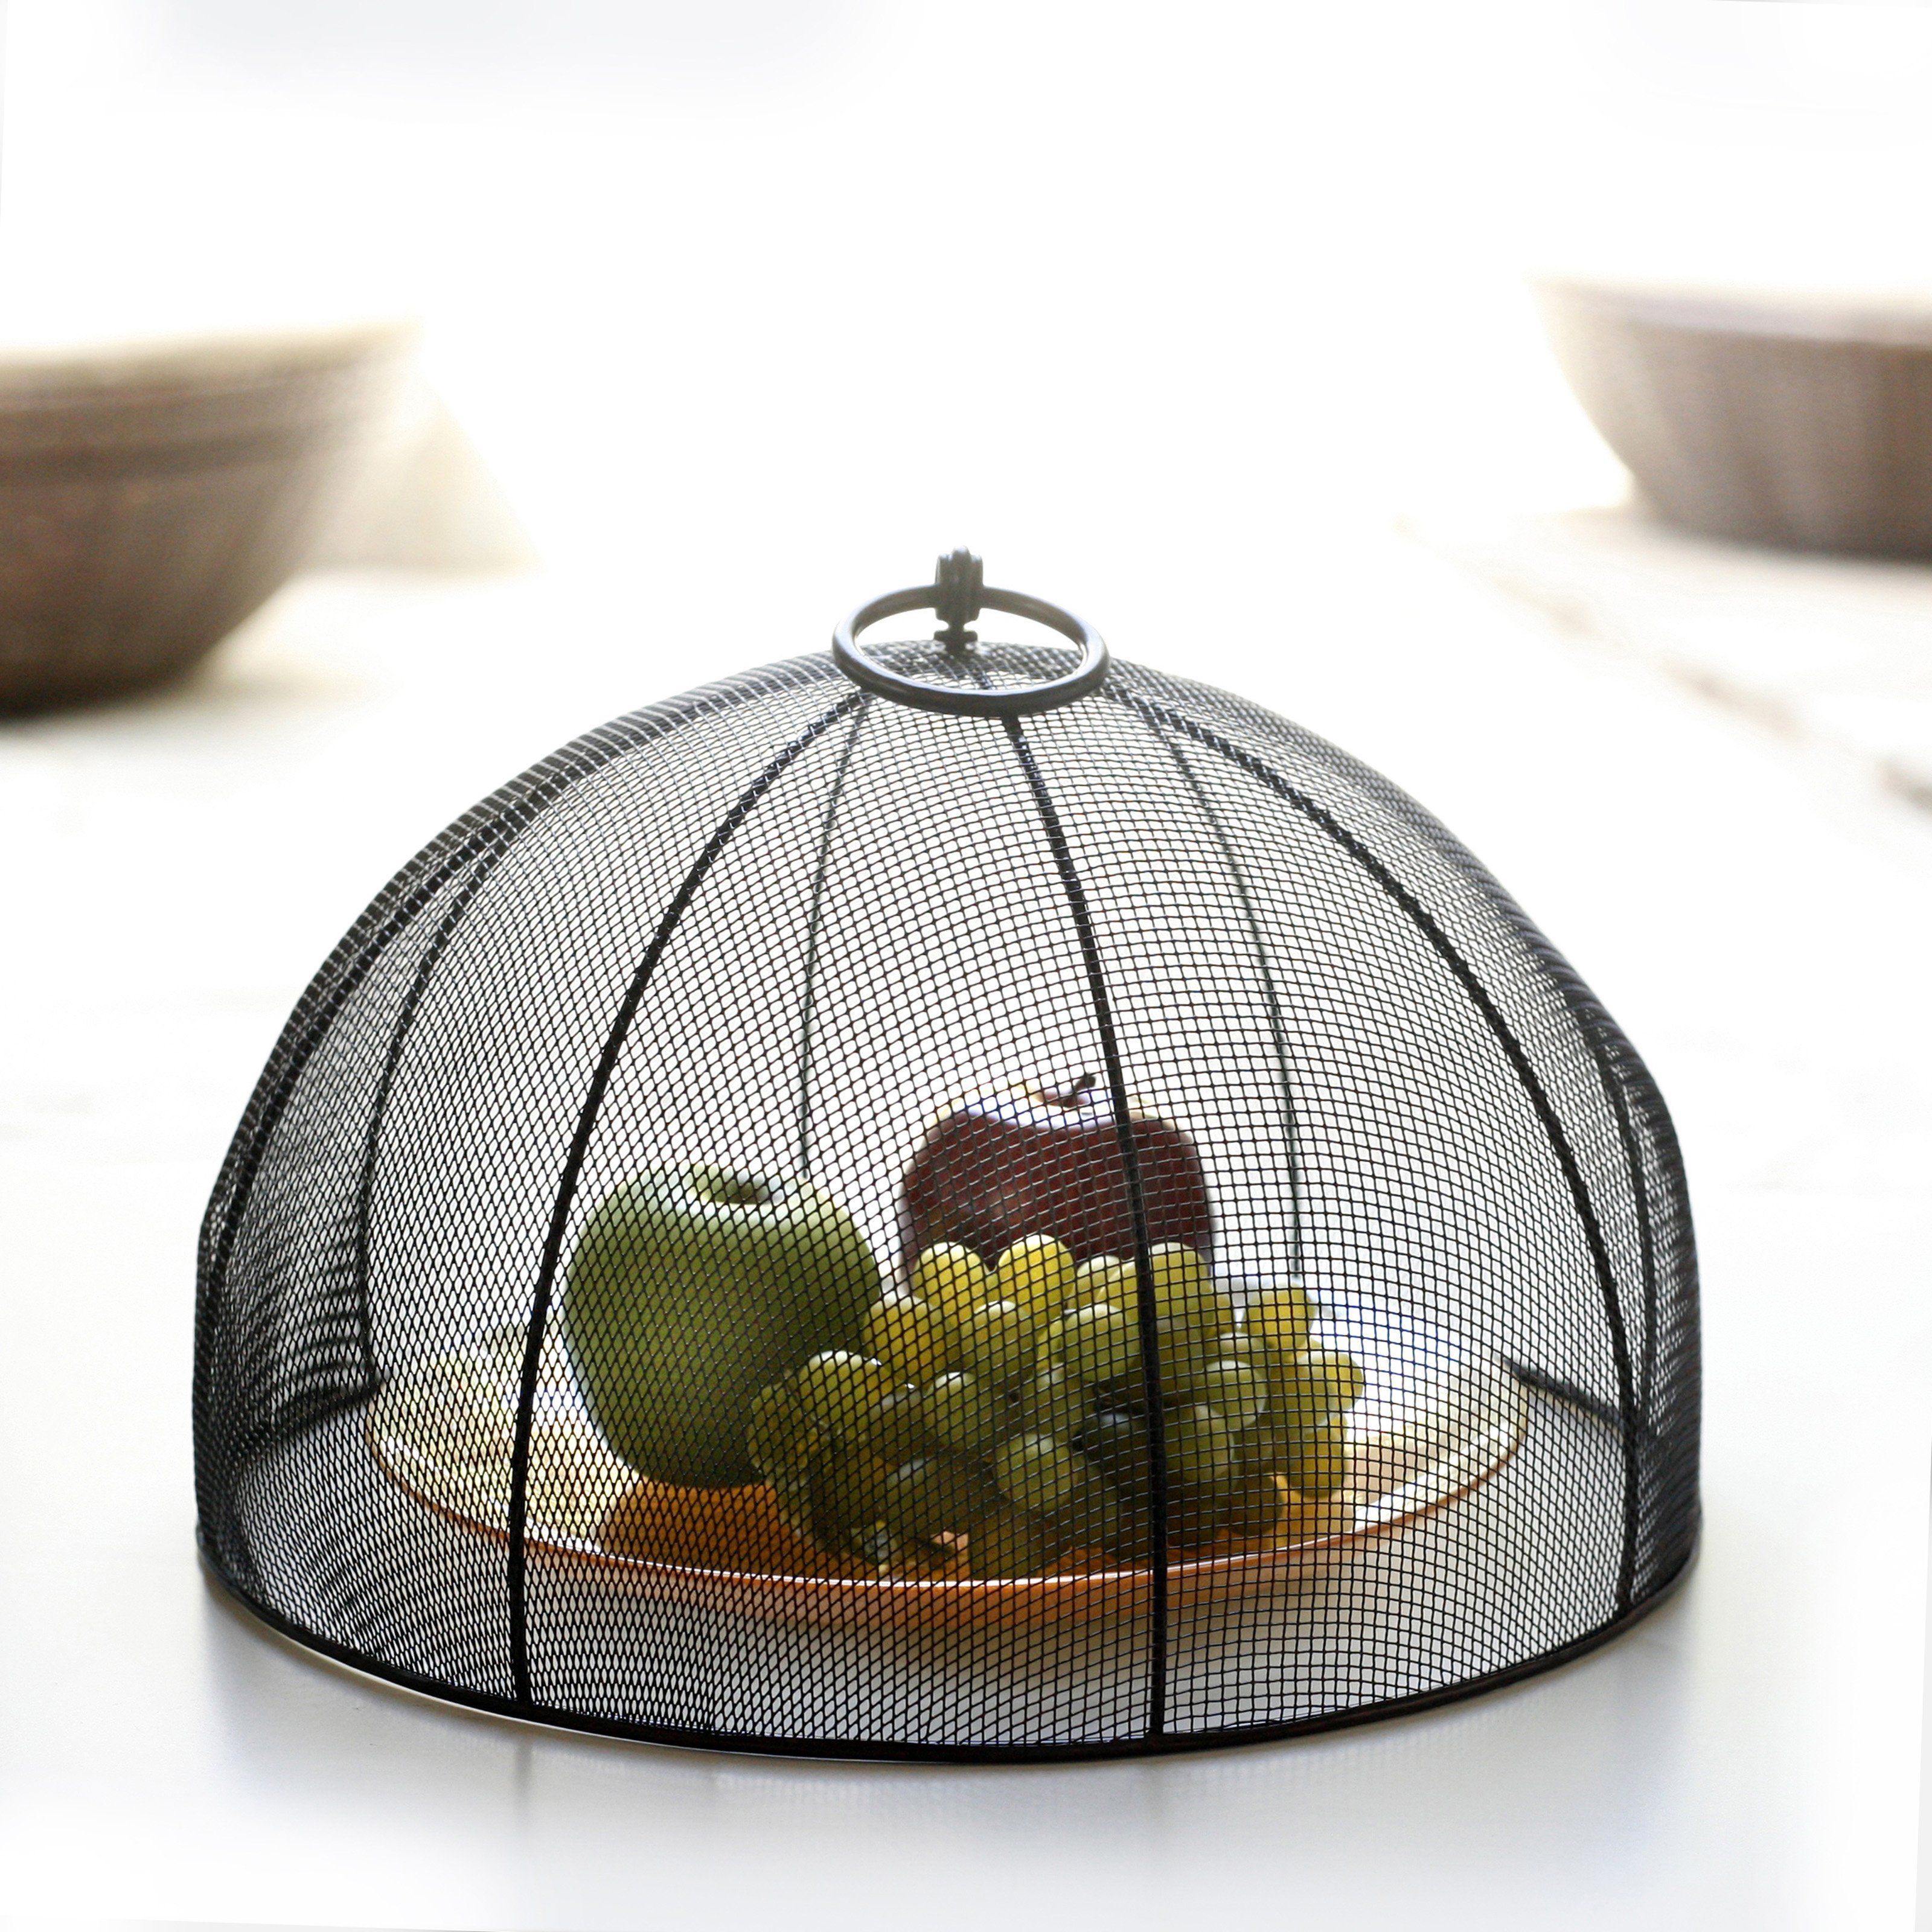 Mesa Home Mesh Dome Food Cover with Flip Ring $59.99 #  sc 1 st  Pinterest & Have to have it. Mesa Home Mesh Dome Food Cover with Flip Ring ...